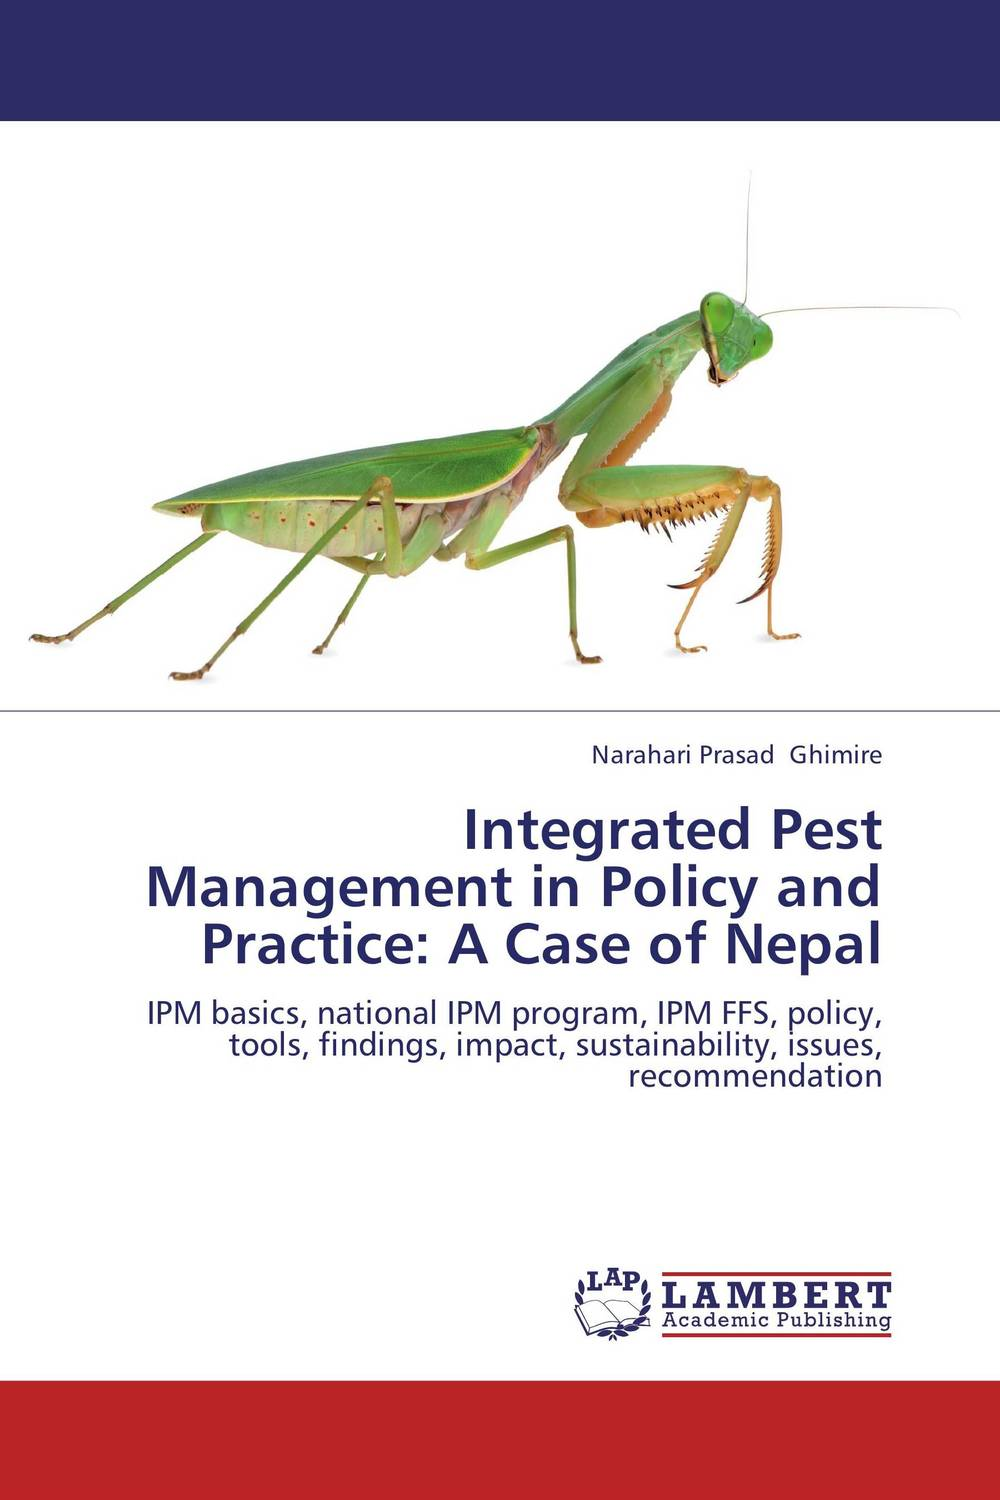 Integrated Pest Management in Policy and Practice: A Case of Nepal narendra sharma satyakumari sharma and n s bhadauria integrated pest management in brinjal